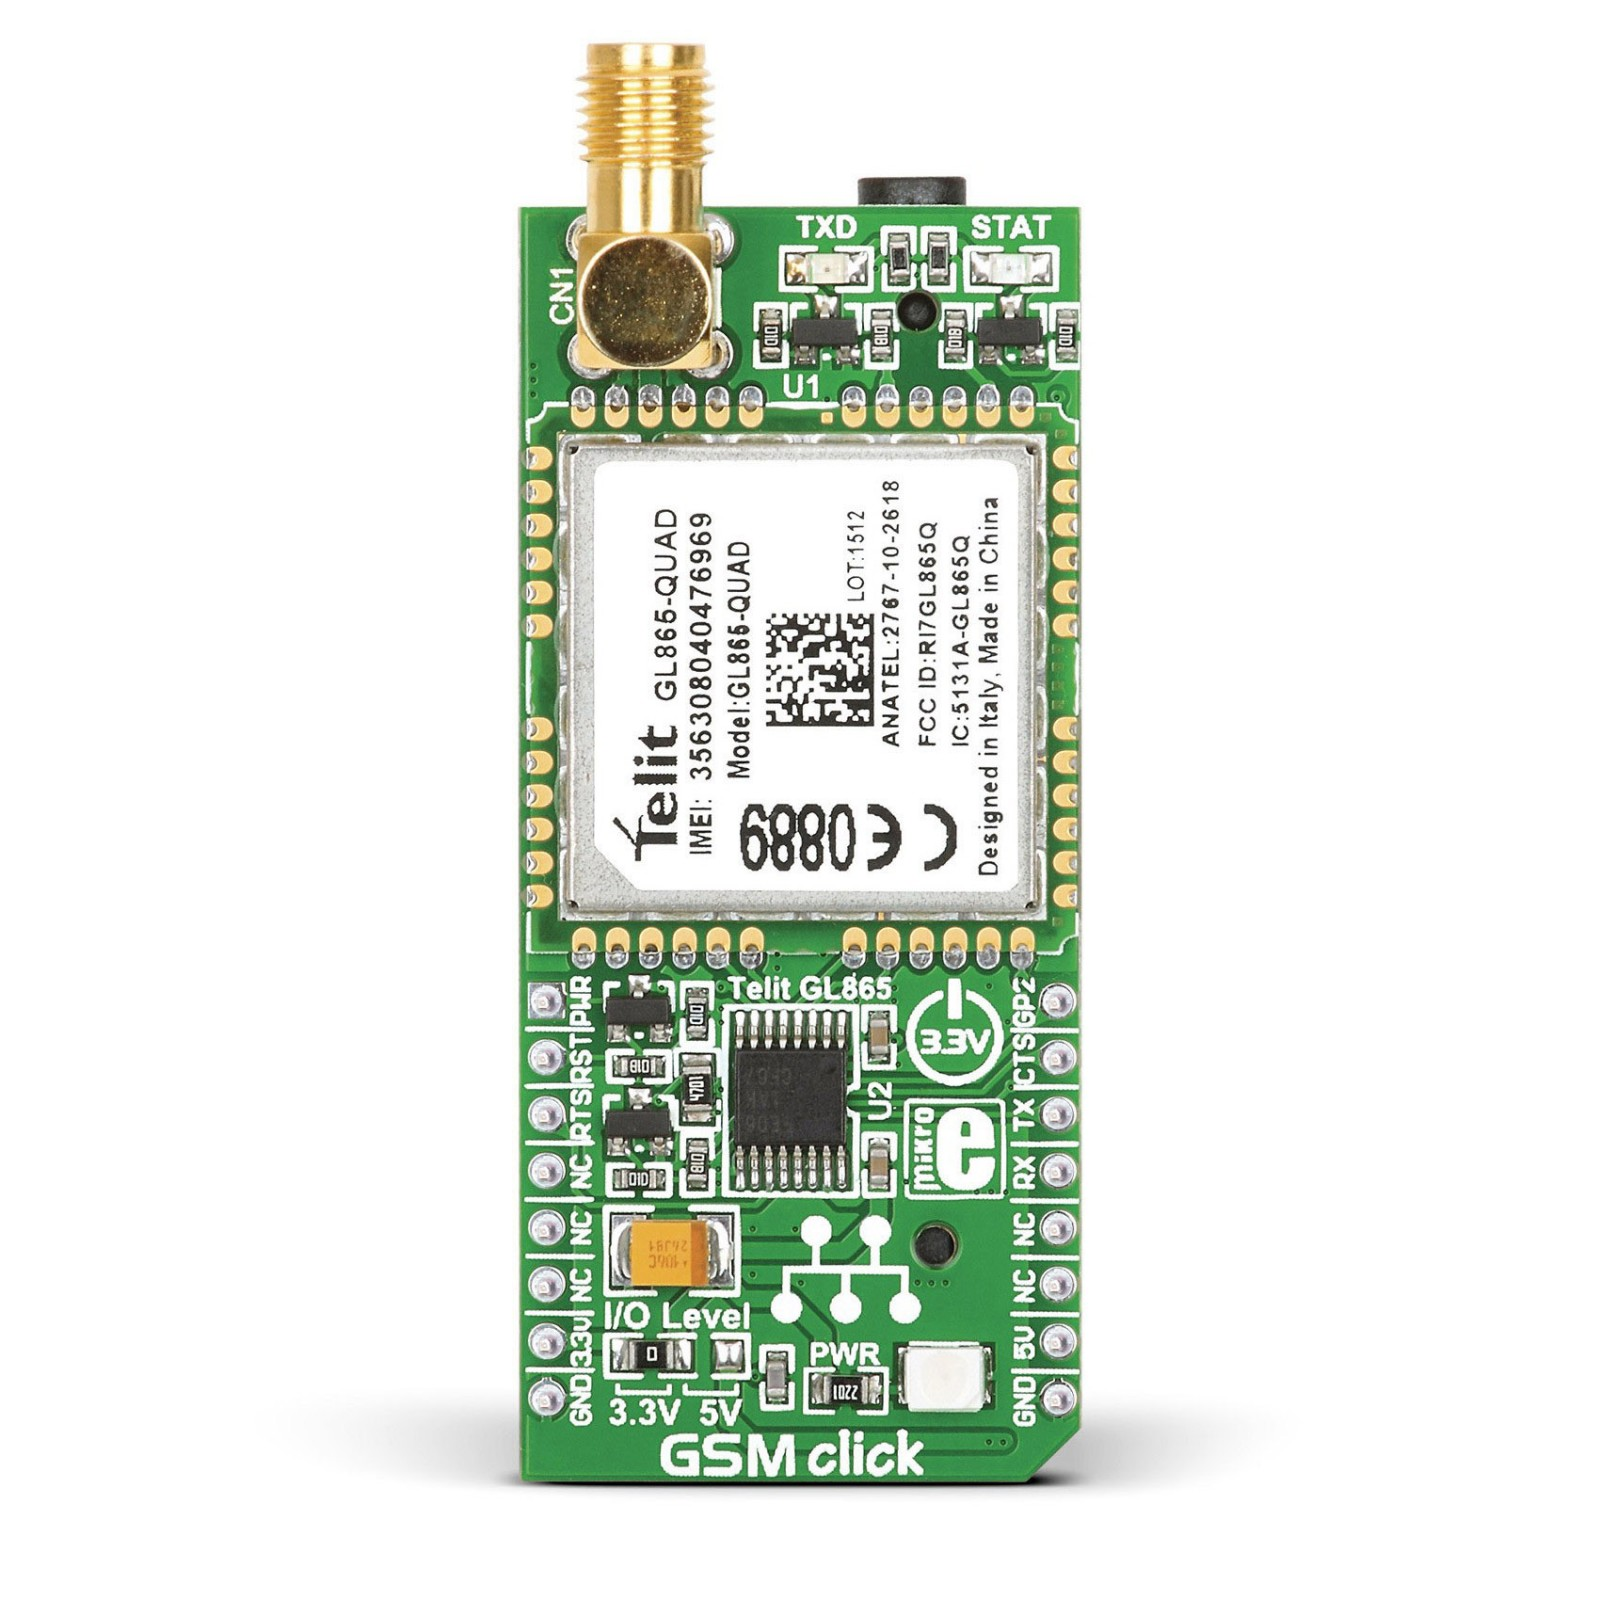 Gsm Click Breakout Board For Telit Gl865 Gprs Quad Module Cell Phone Jammer Circuit Schematic Mgctlbxnmzp Mgctlbxv5112 Mgctlbxlc Mgctlbxpprestashop